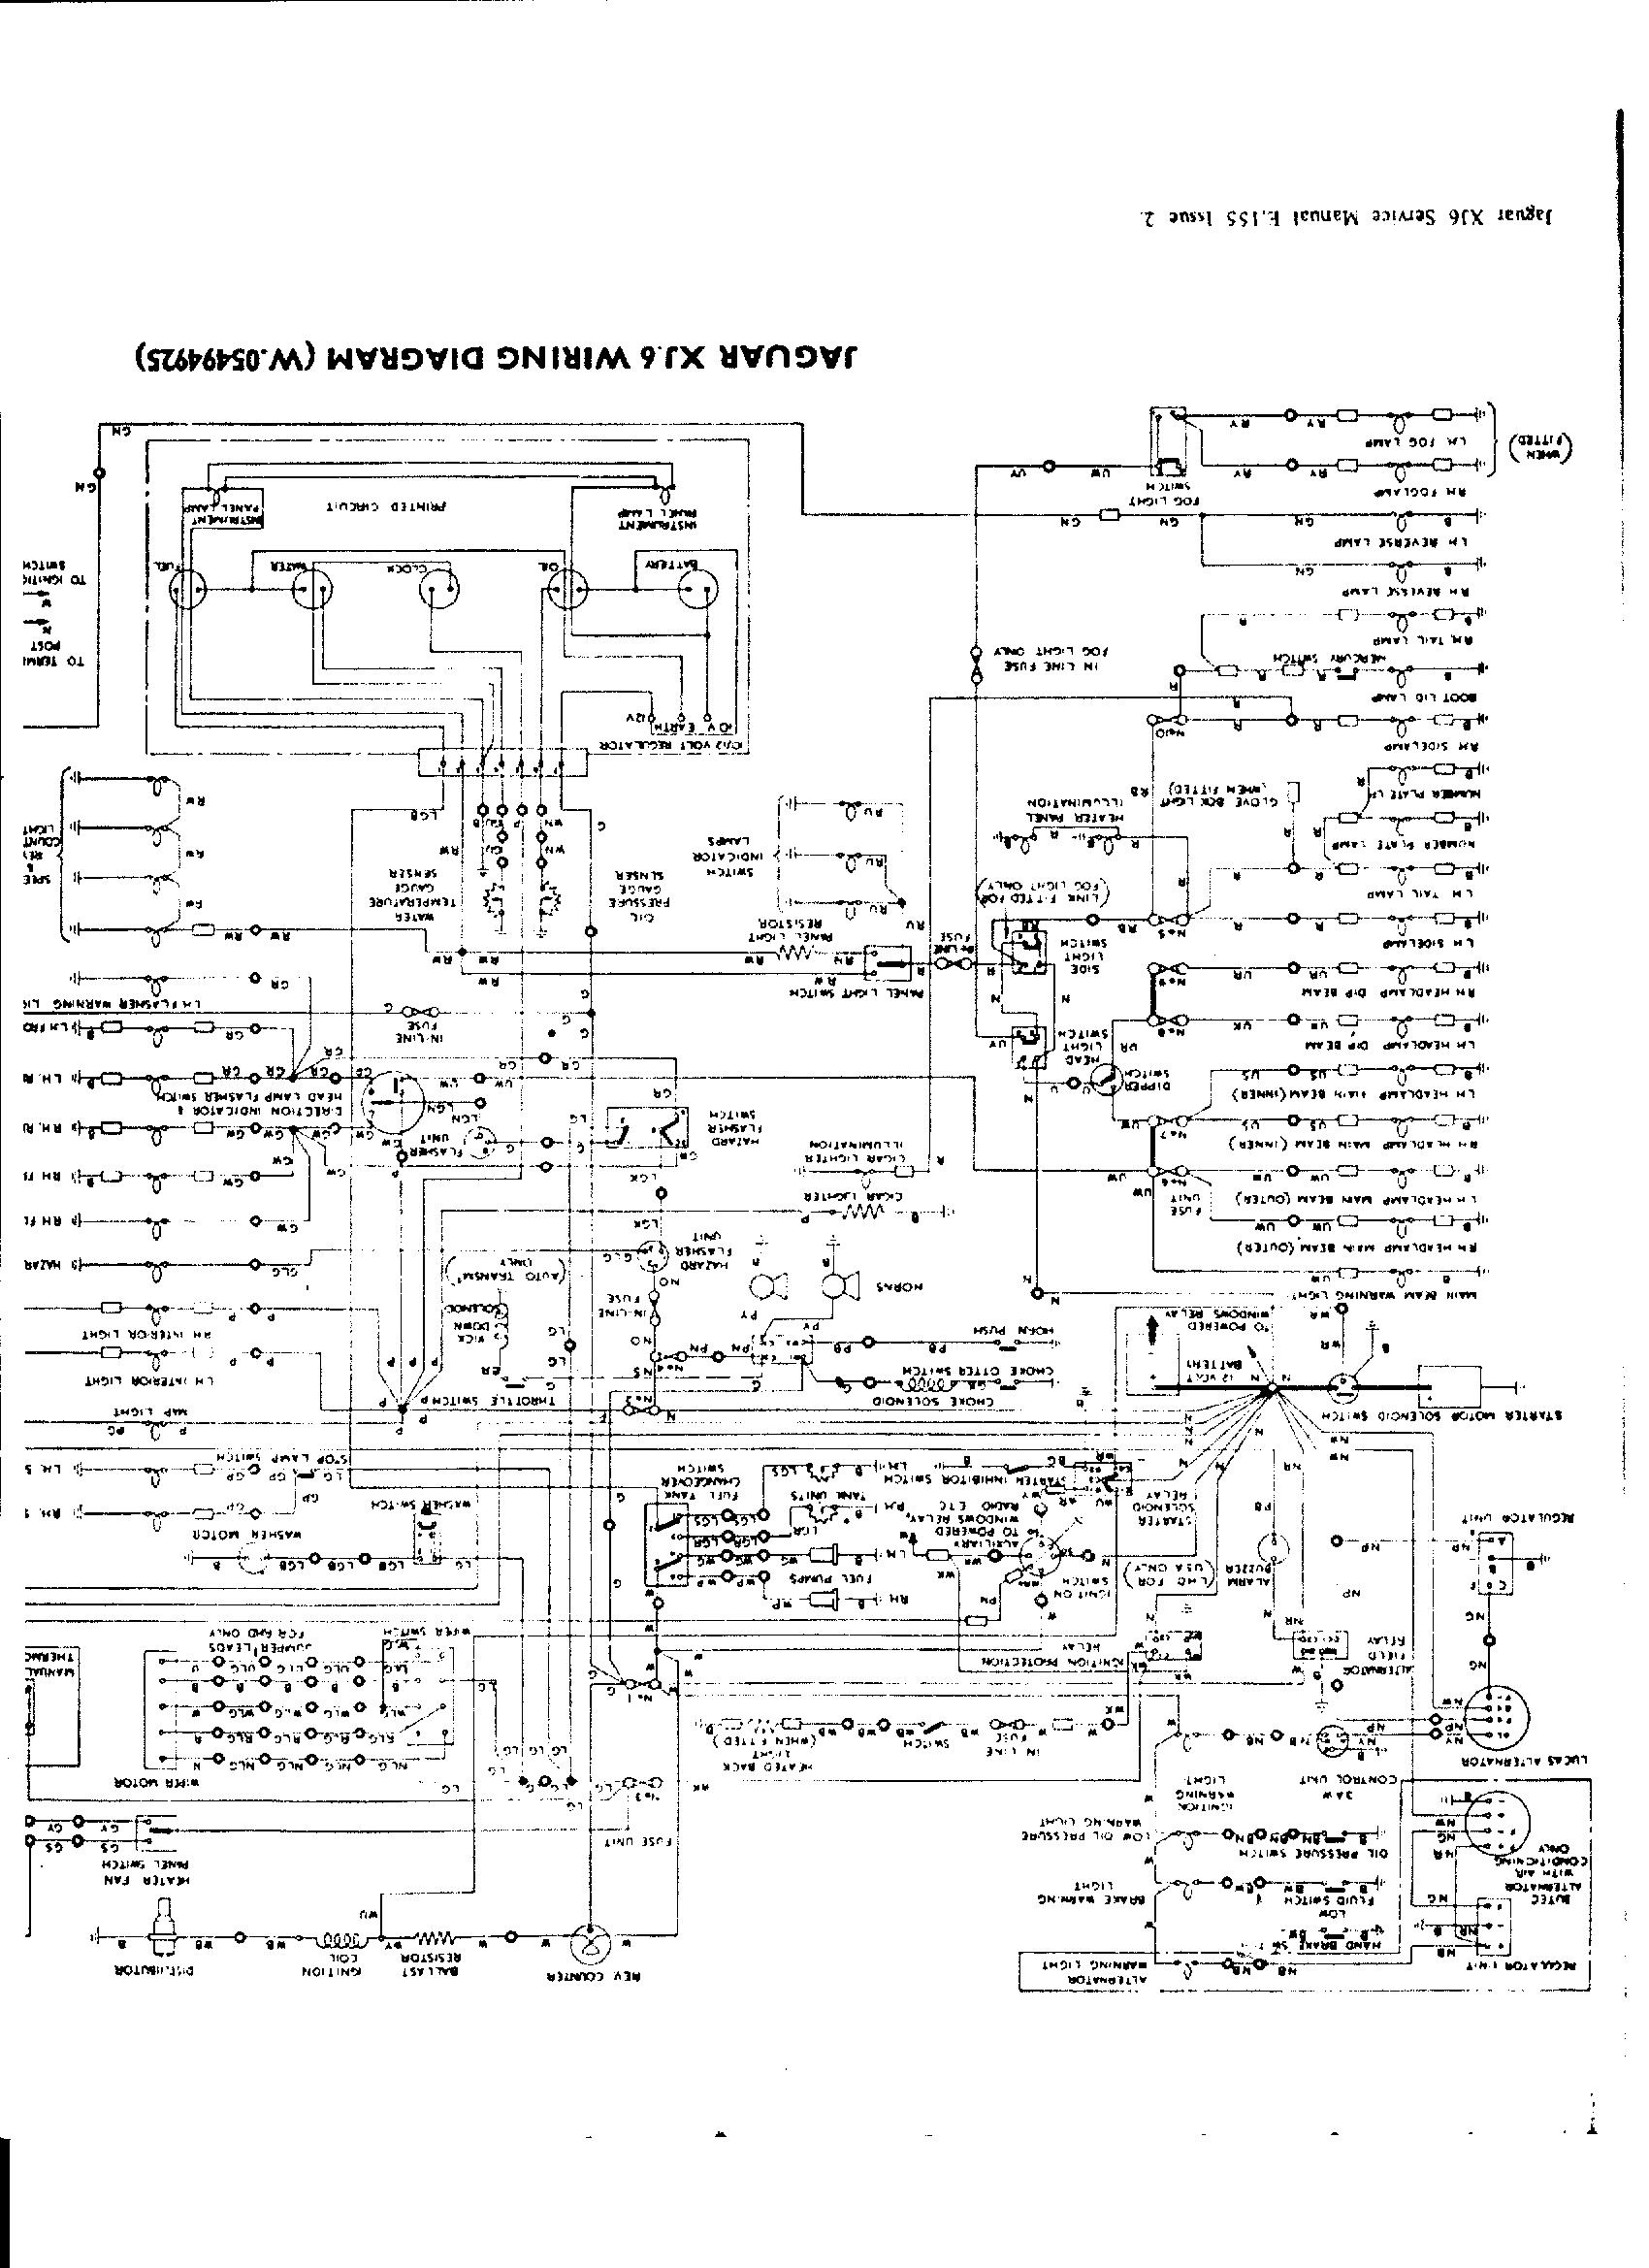 56 chevy wiper motor wiring diagram  chevy  auto fuse box